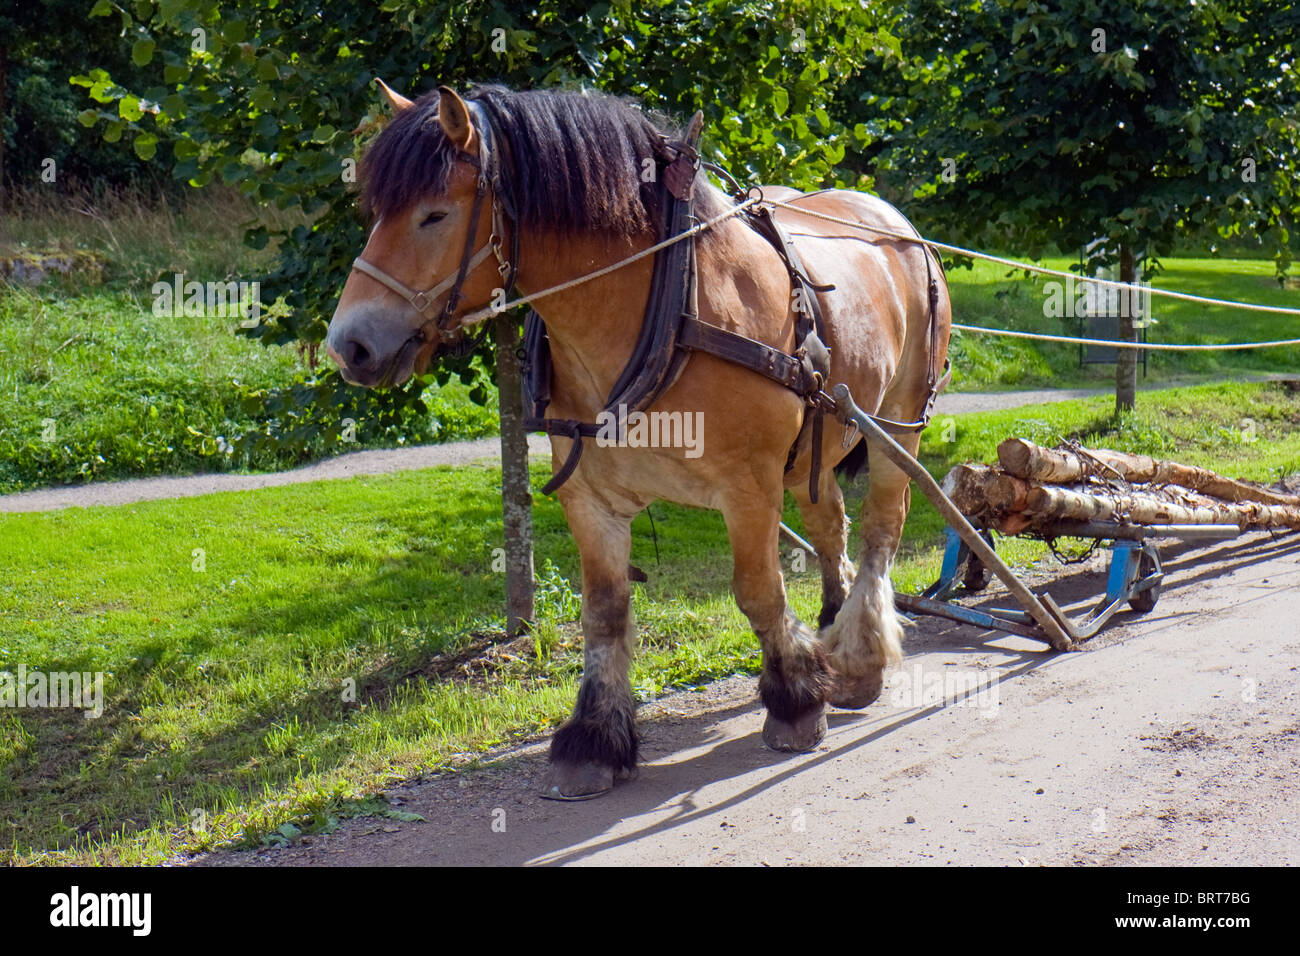 Horse Working Pulling Logs High Resolution Stock Photography And Images Alamy